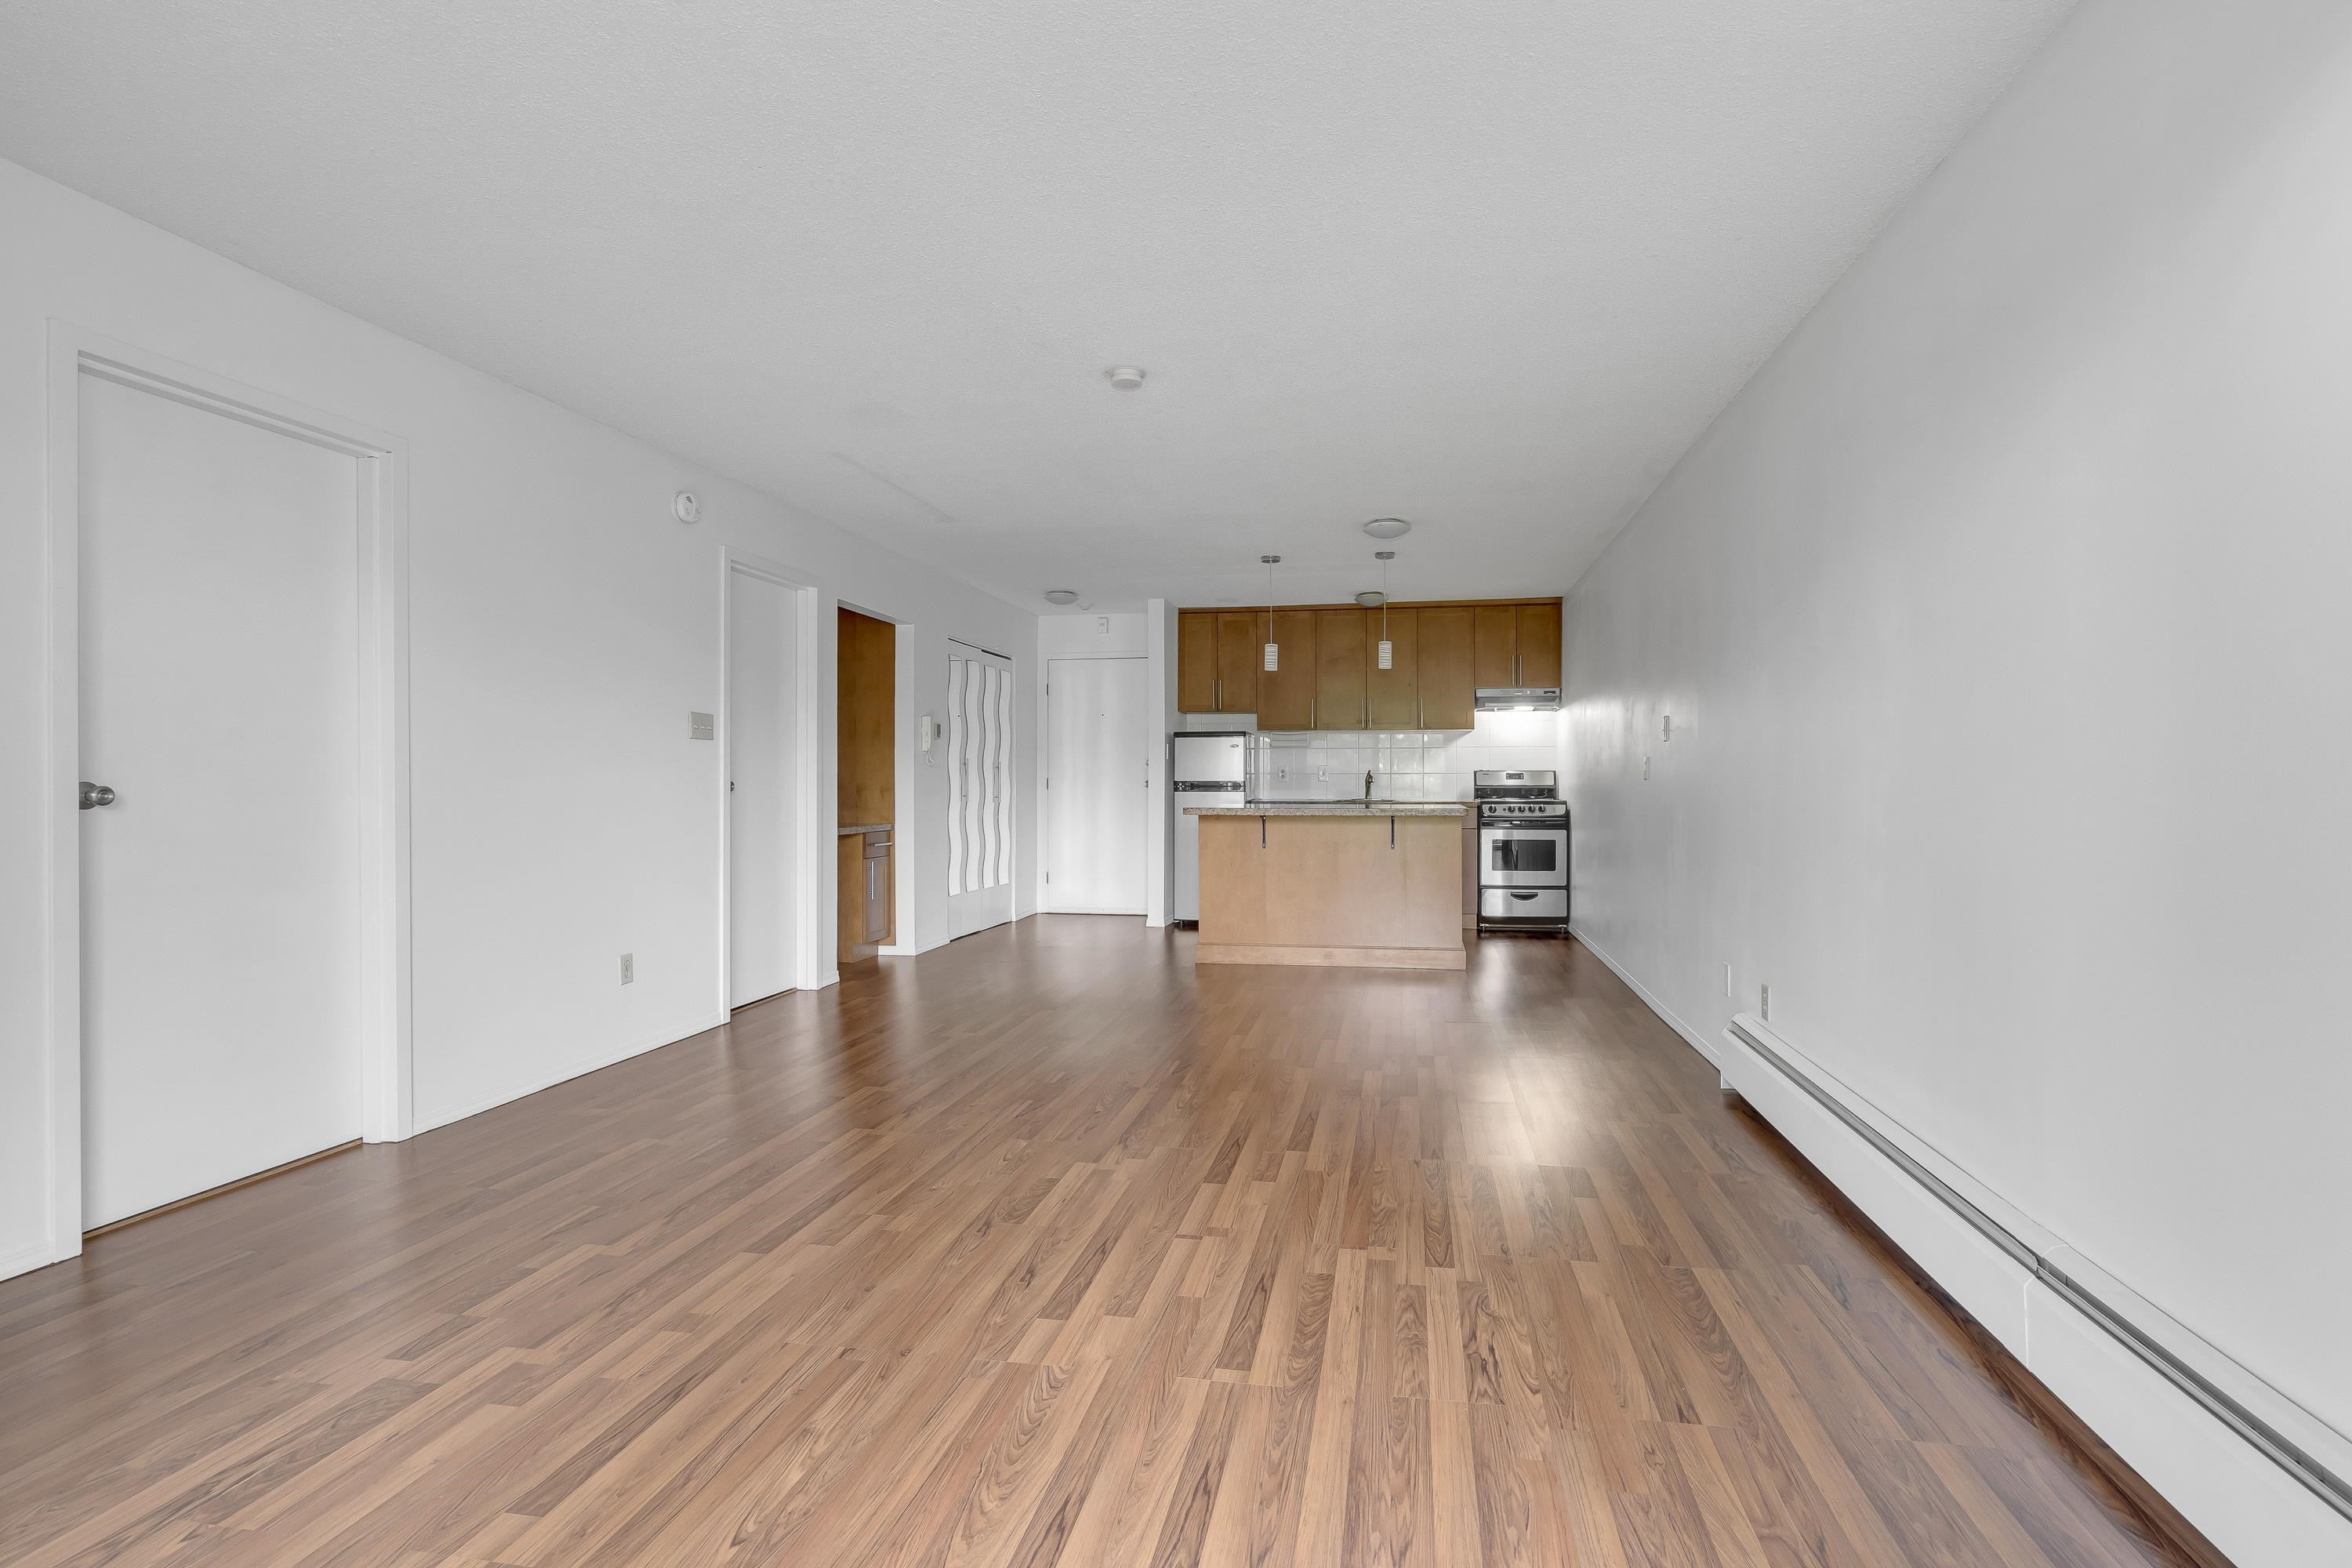 208 270 WEST 3RD STREET - Lower Lonsdale Apartment/Condo for sale, 1 Bedroom (R2615758) - #7